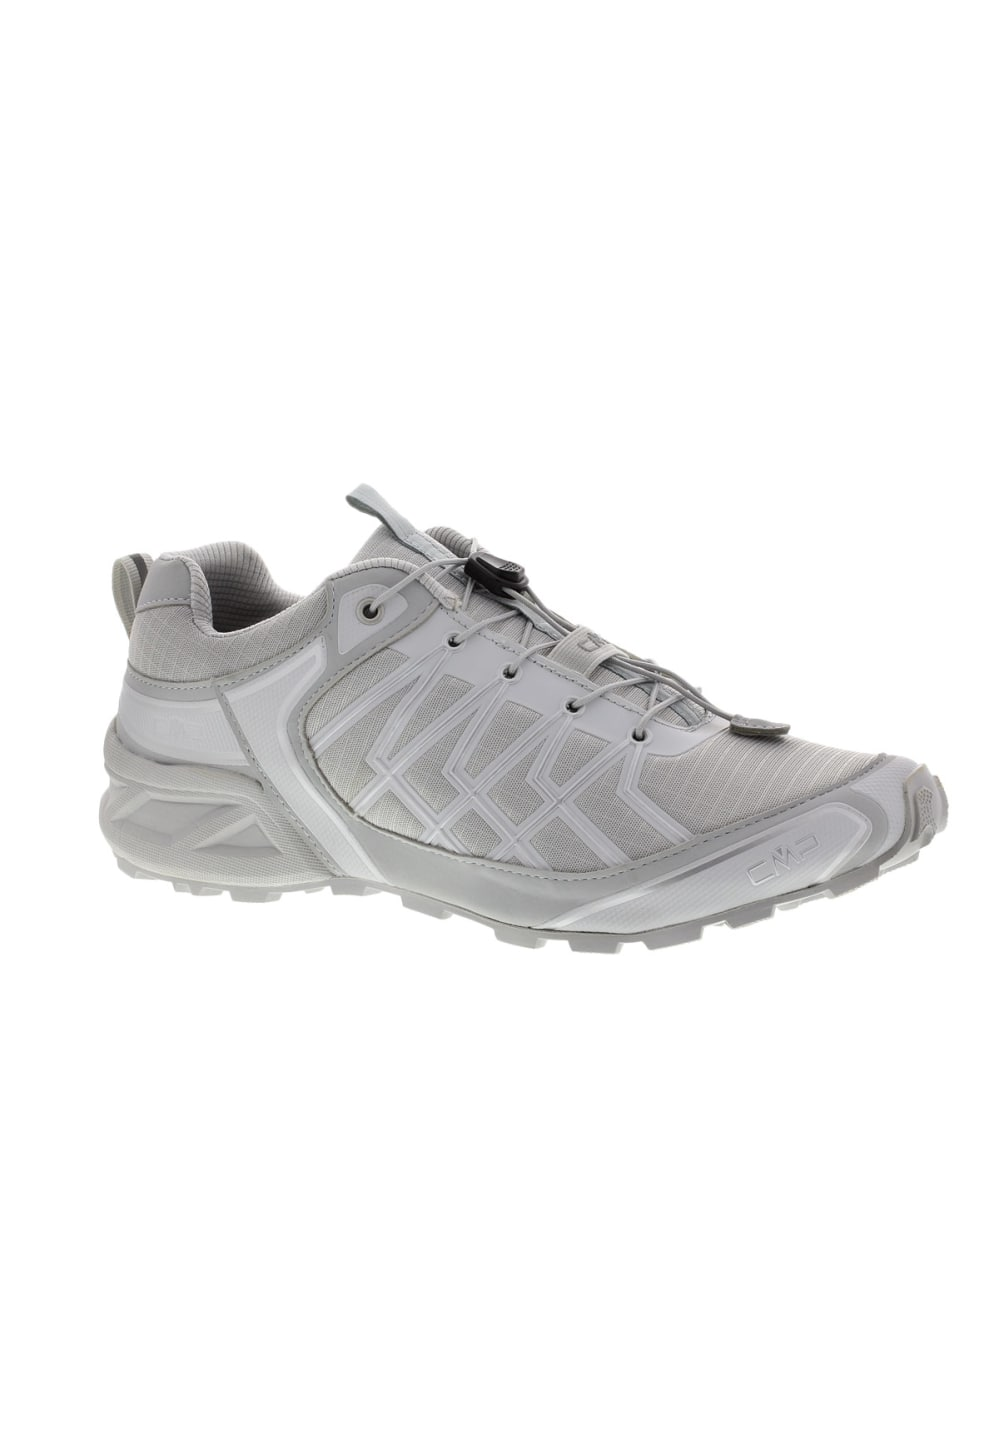 Campagnolo Super X Trail - Chaussures running pour Femme - Gris